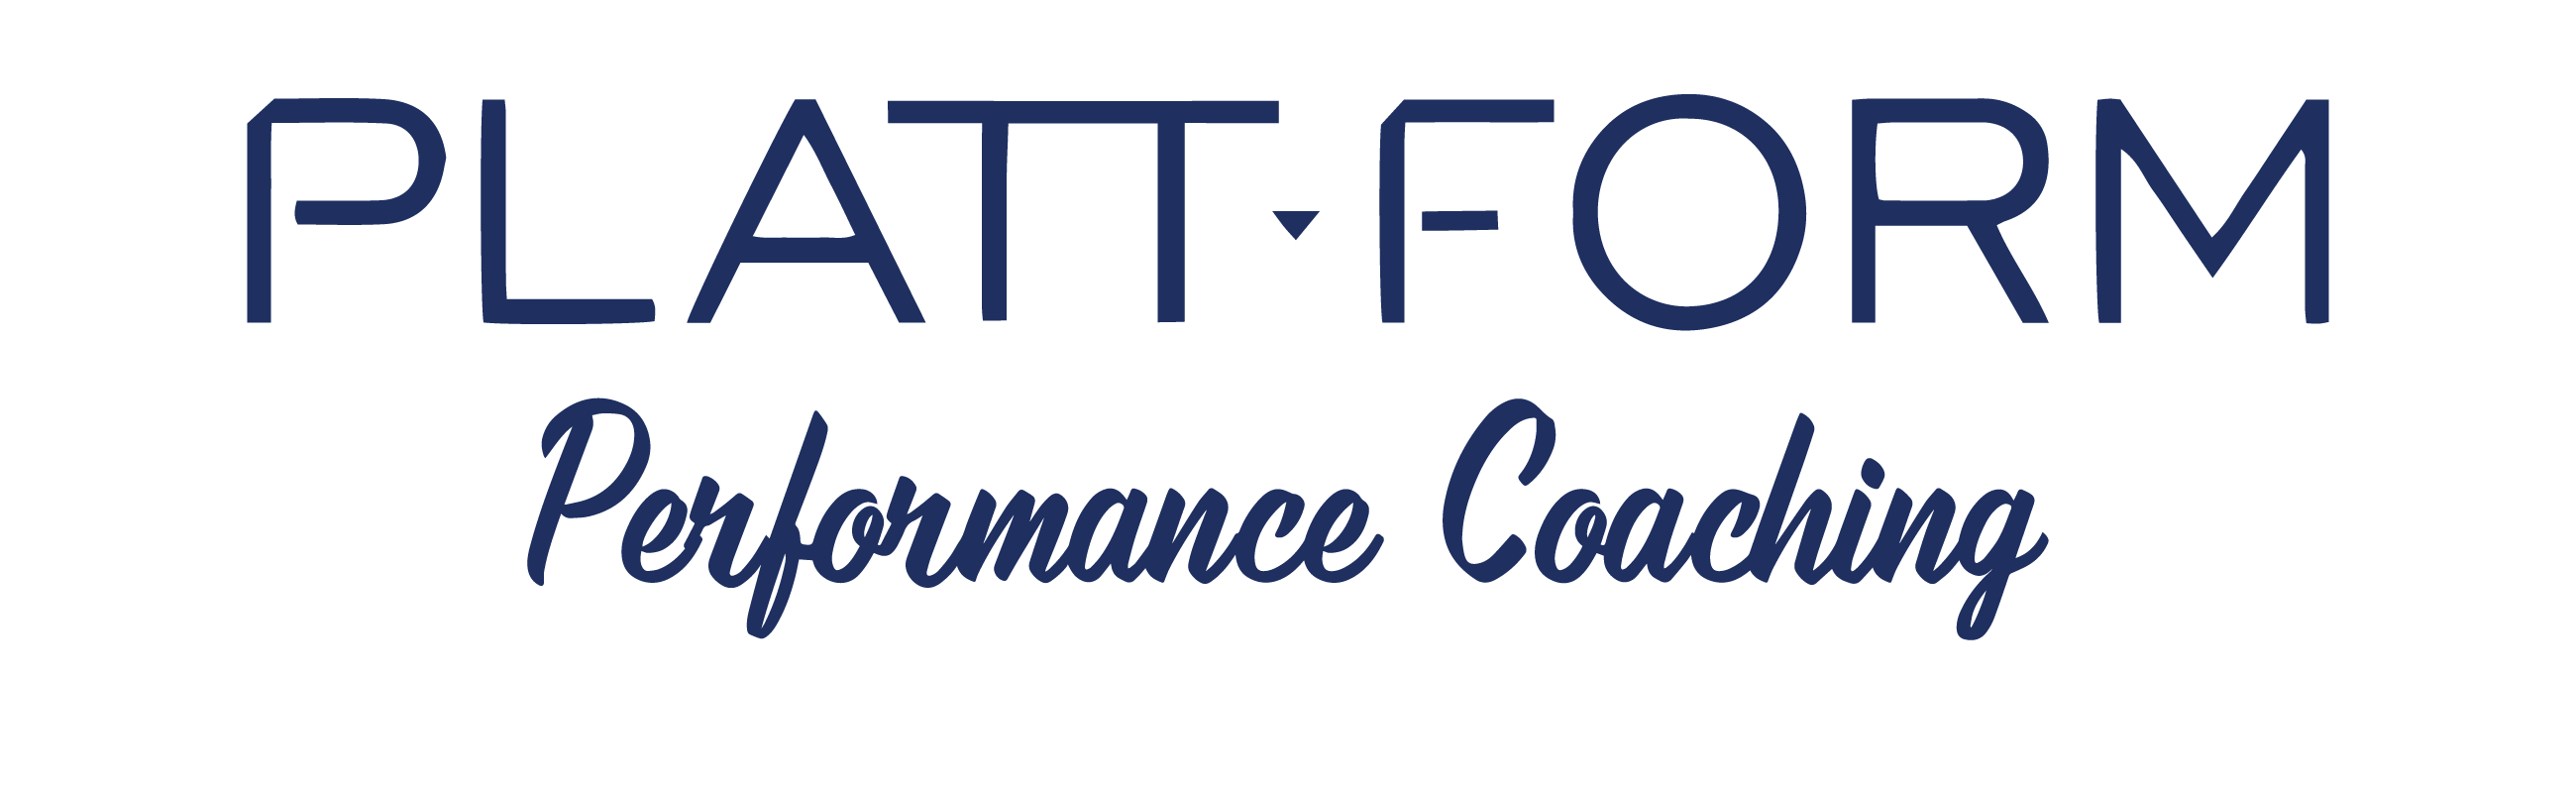 Plattform Performance Coaching - Logo